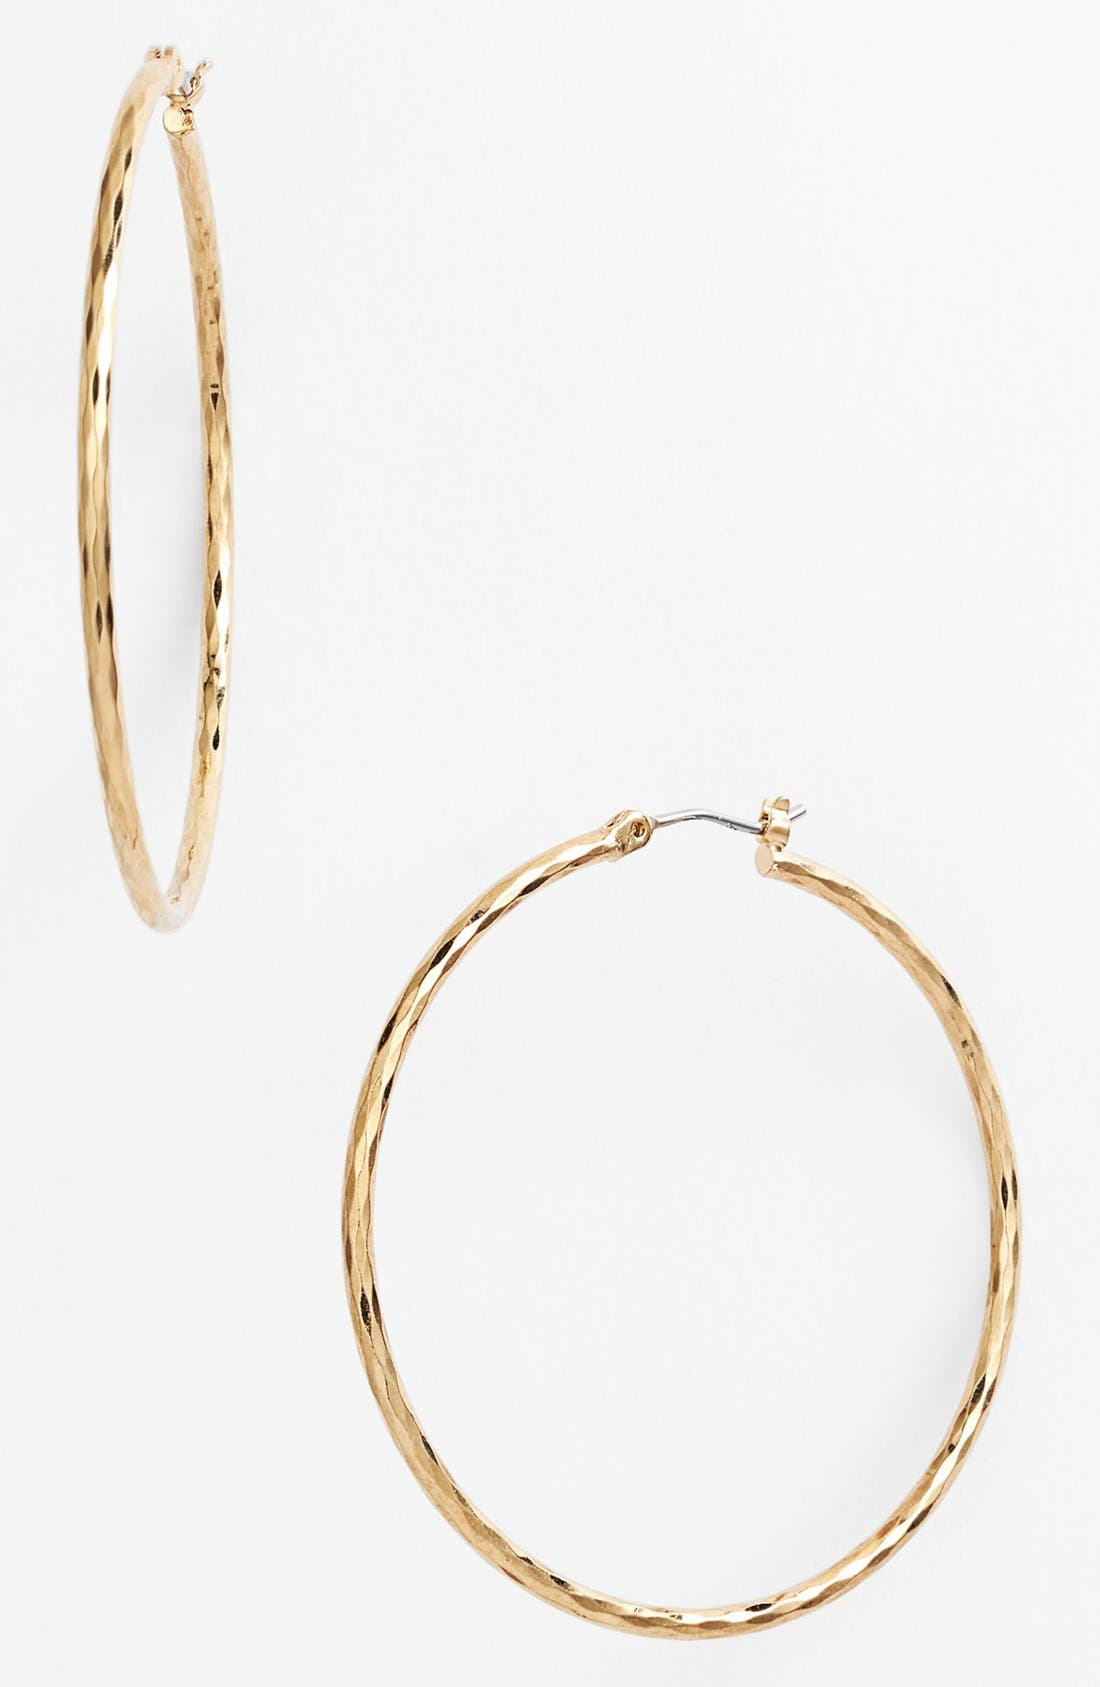 Main Image - Nordstrom Harlequin Facet Hoop Earrings